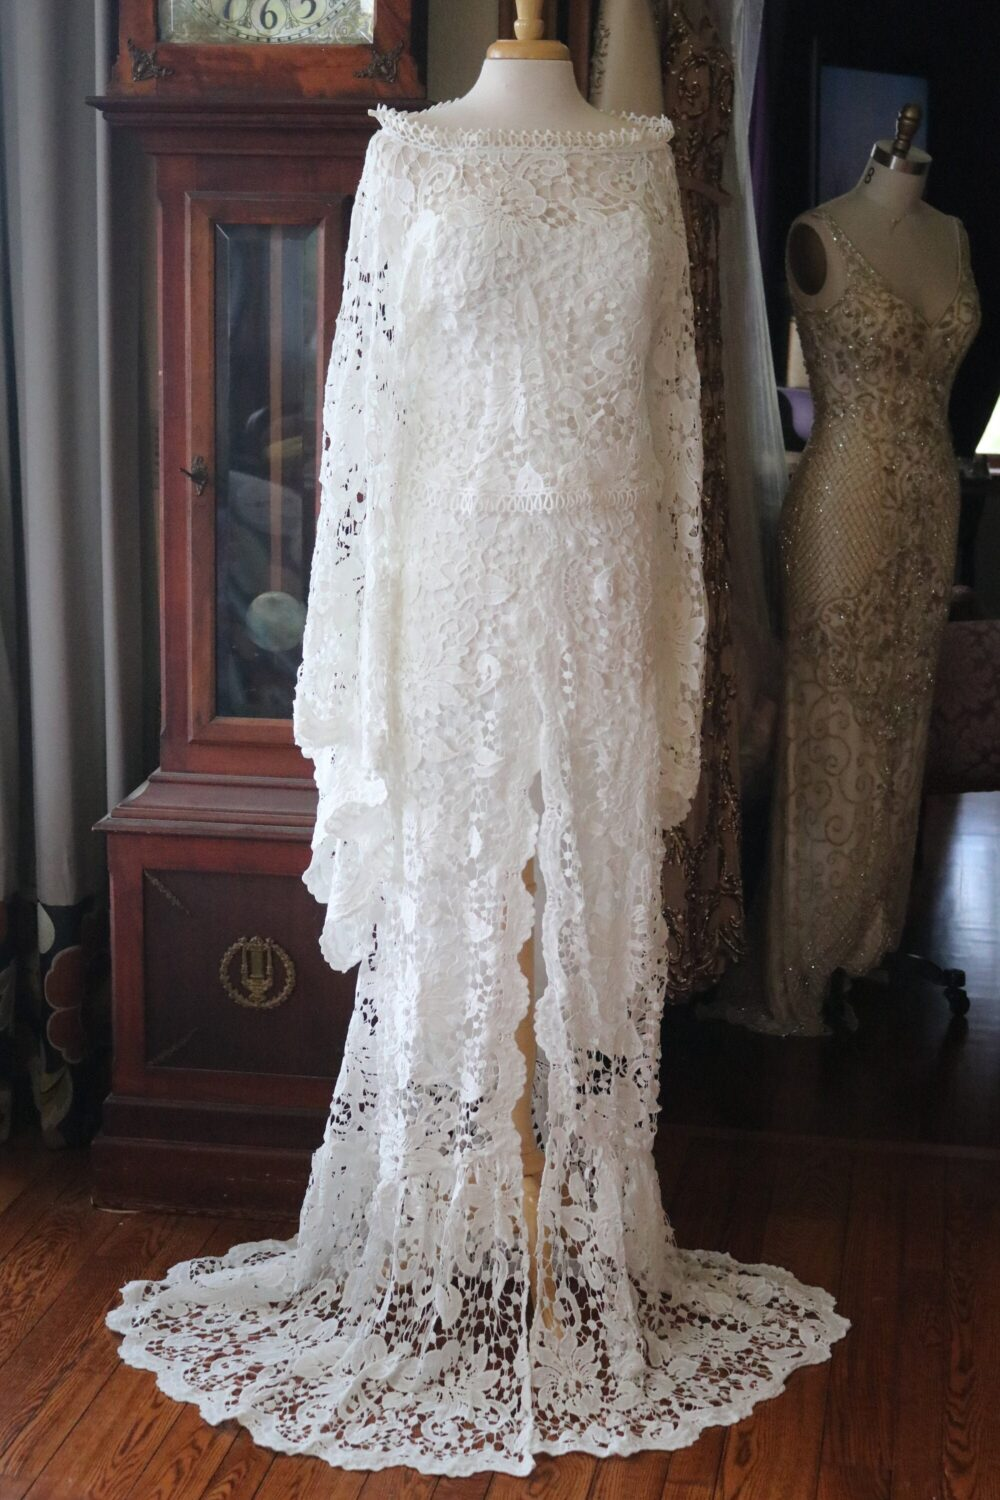 Guinevere Lace Strapless Lace Gown Boat Neck Poet Sleeve Hippie Fantasy Wedding